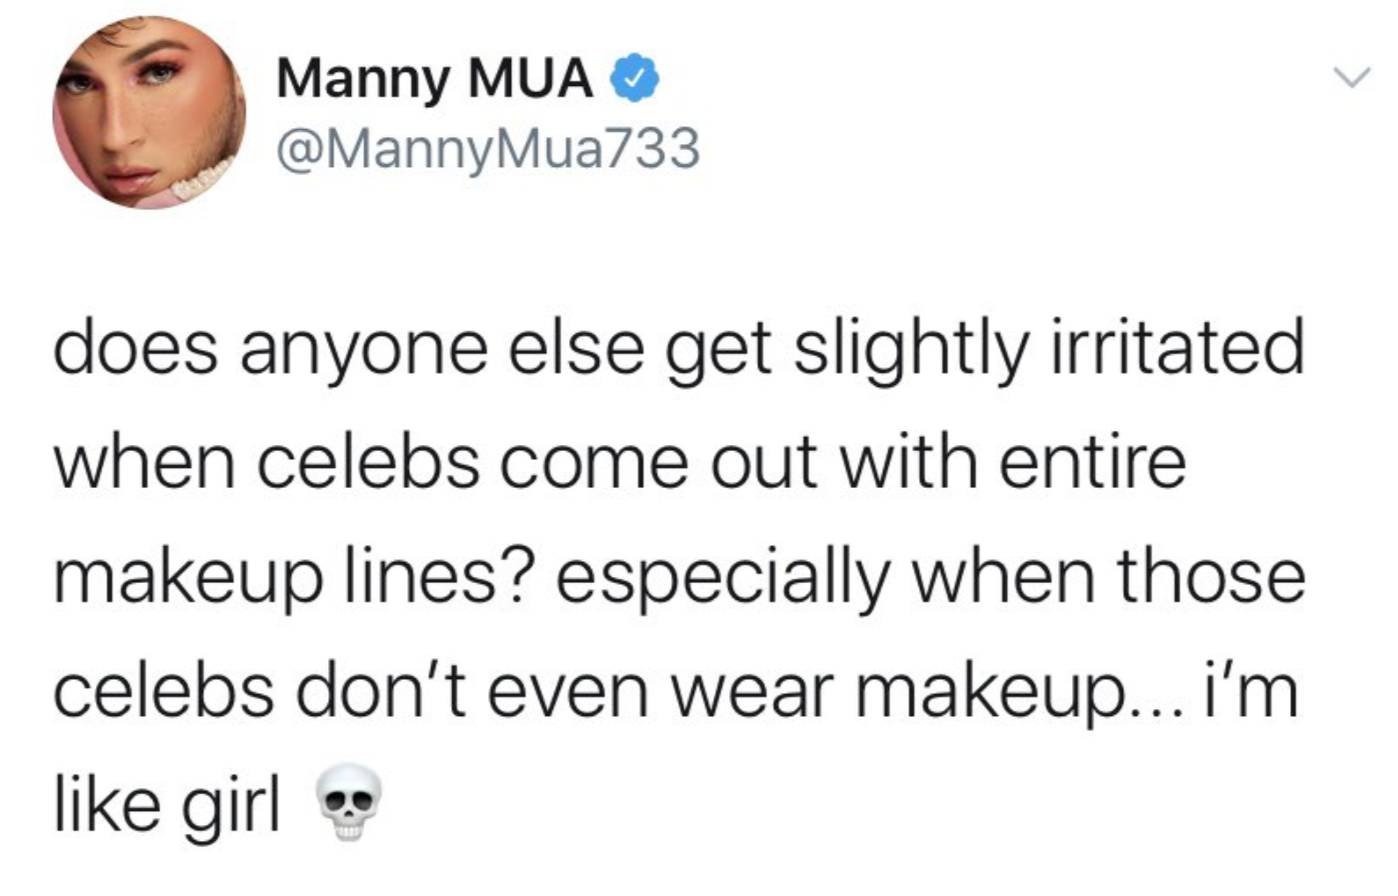 """He said, """"Does anyone get slightly irritated when celebs come out with entire makeup lines? Especially when those celebs don't even wear makeup."""""""